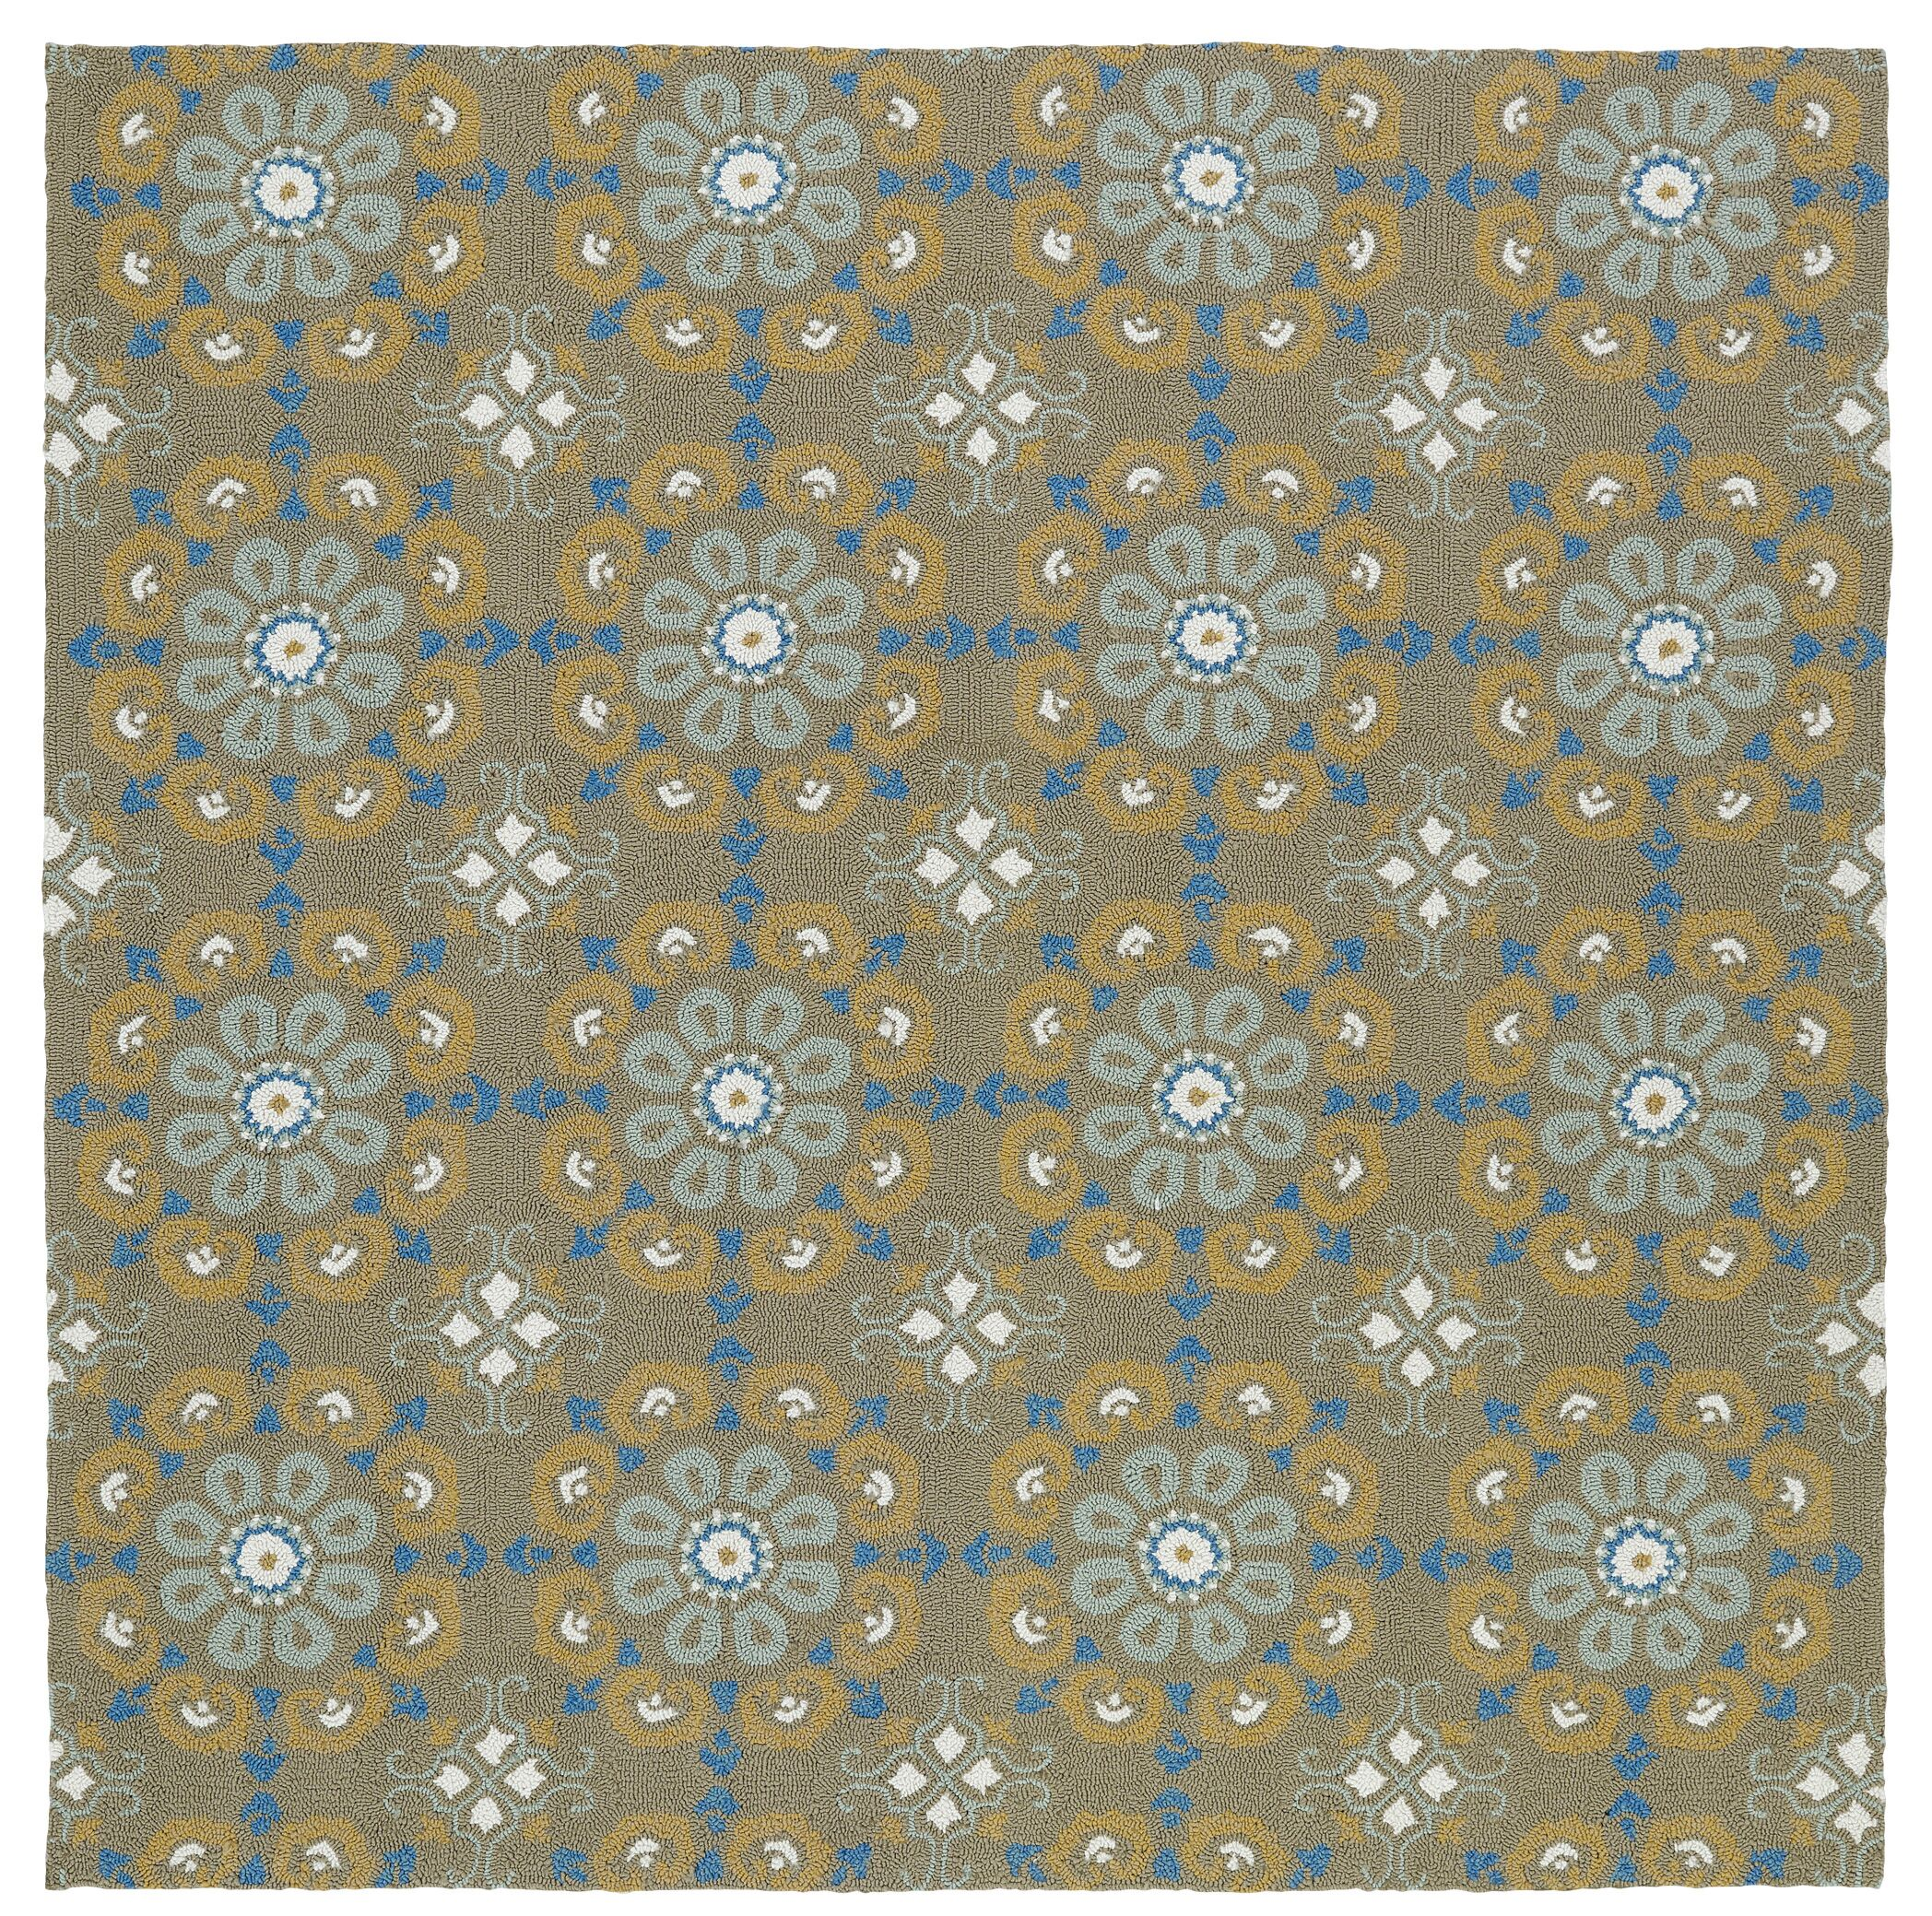 Cavour Handmade Brown Indoor / Outdoor Brown Area Rug Rug Size: Square 5'9